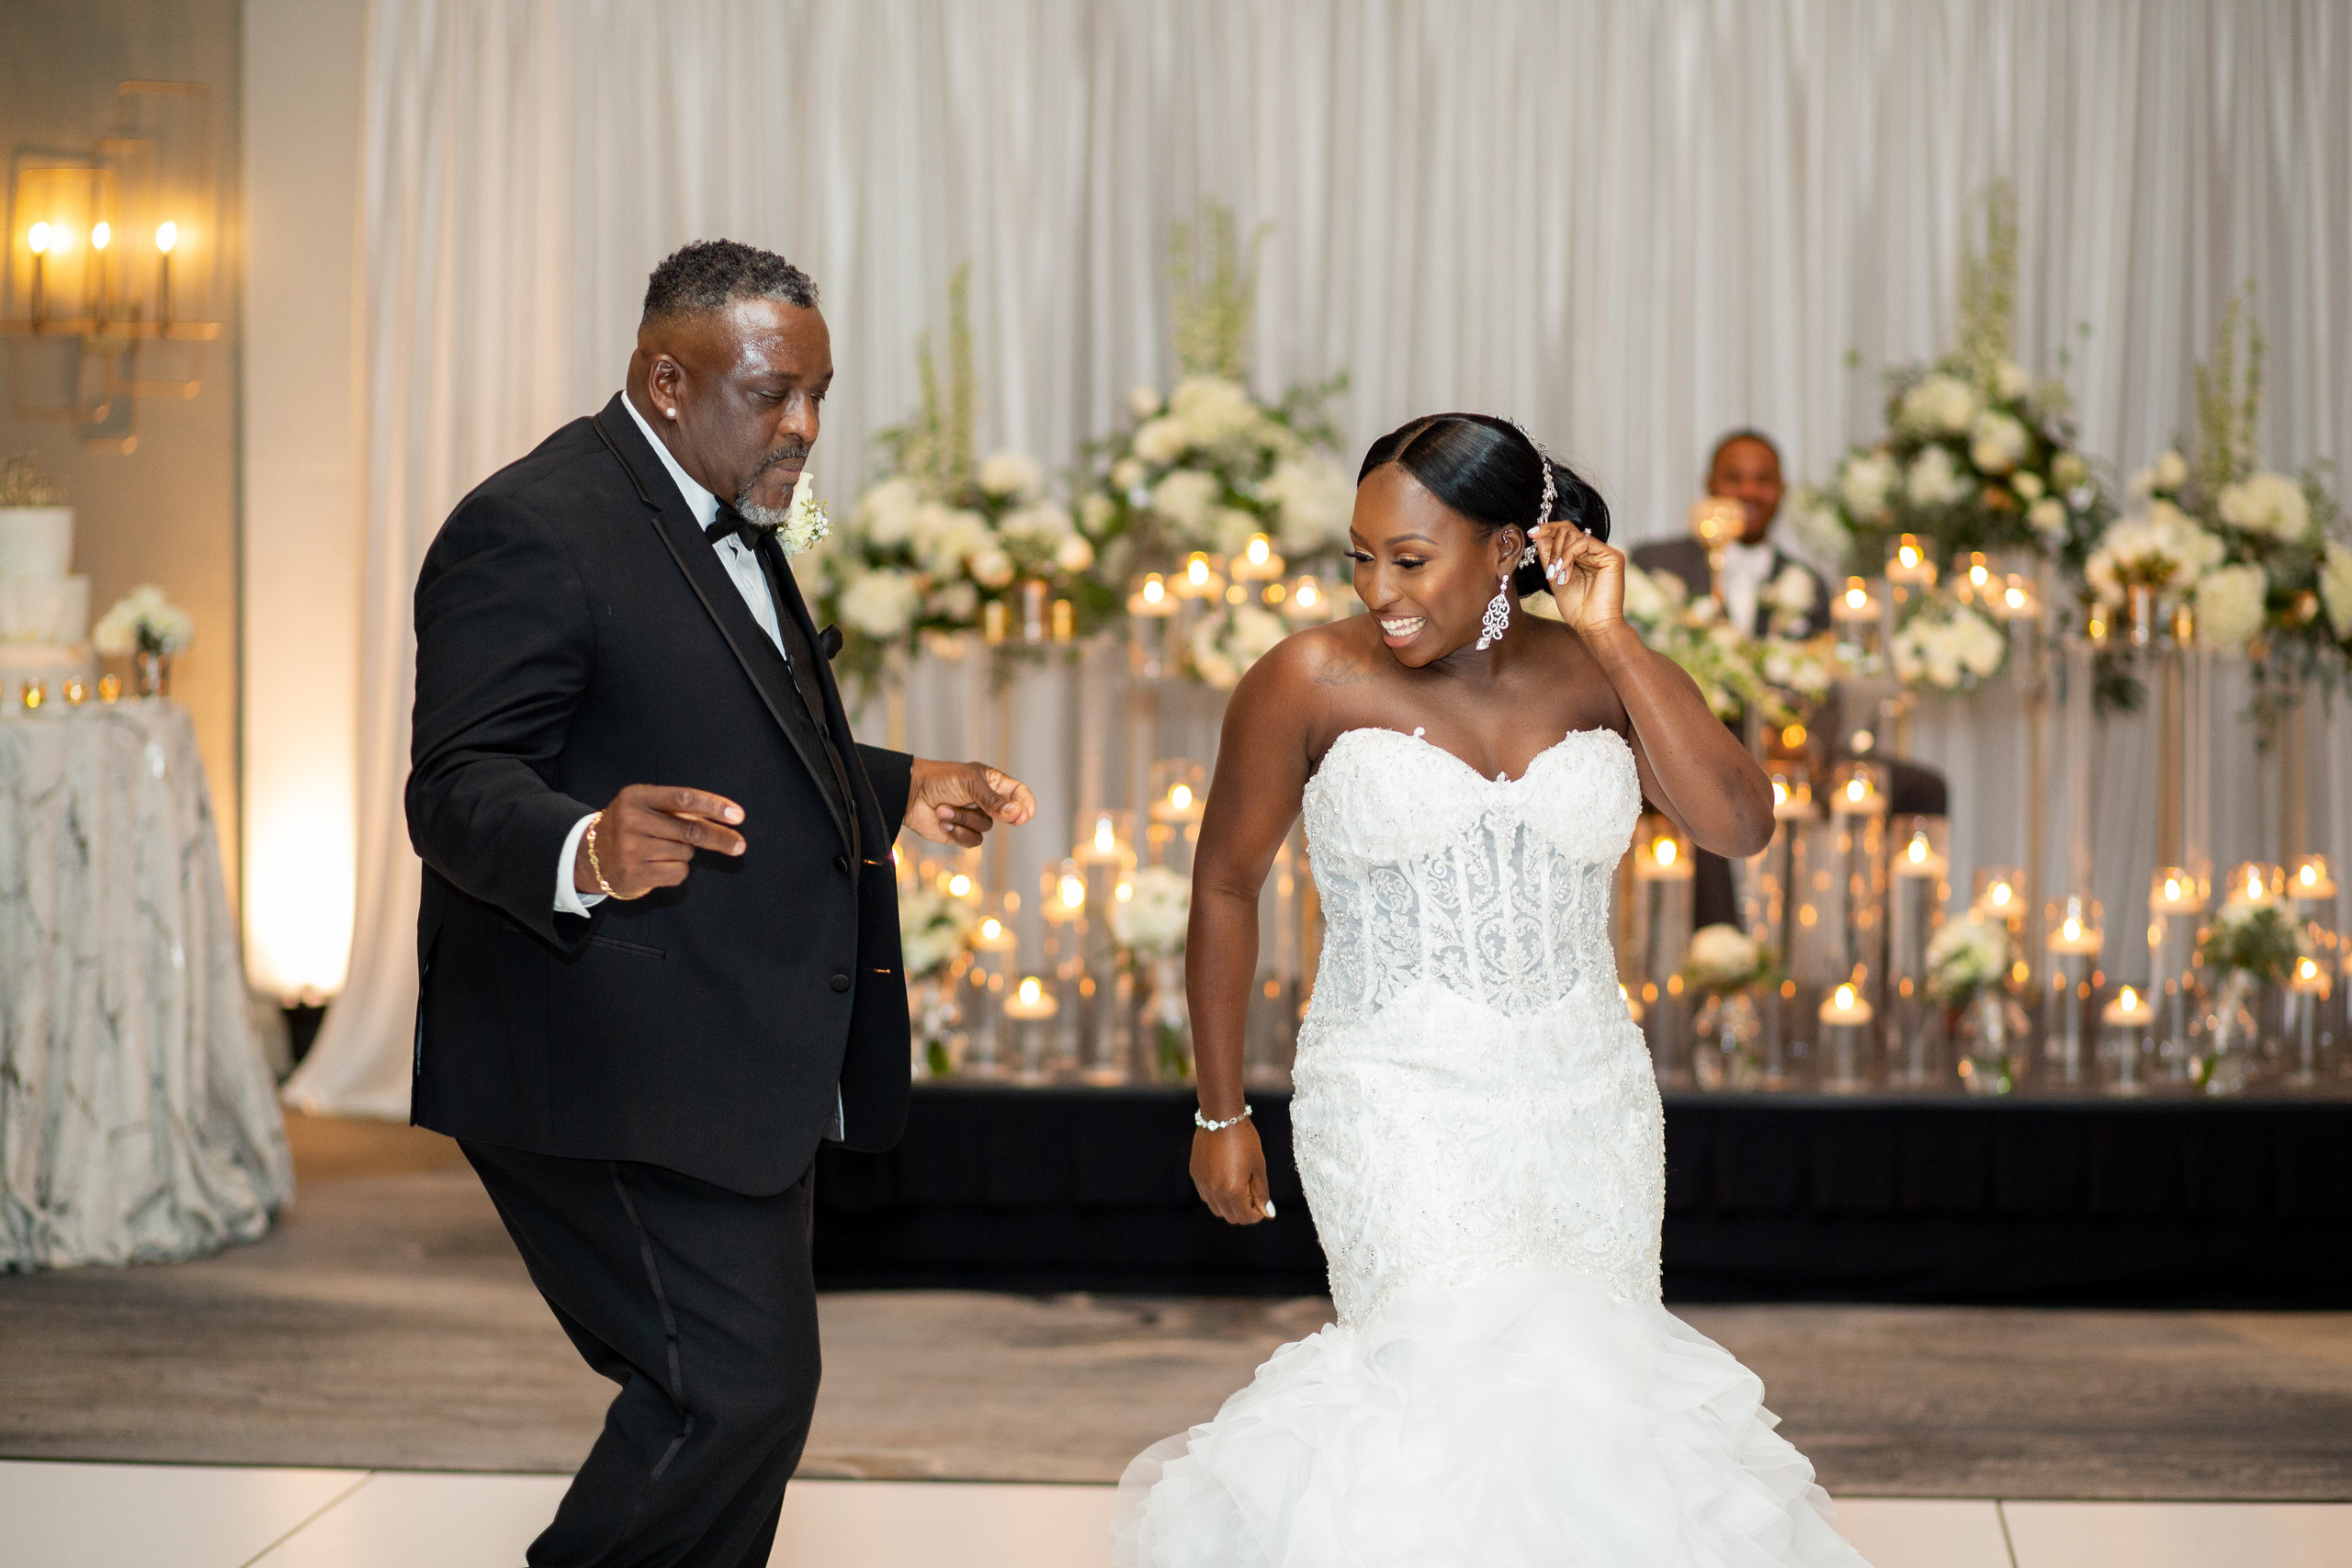 The father of the bride and bride have fun with their dance during the wedding reception at the Hilton Main in Norfolk, Virginia.